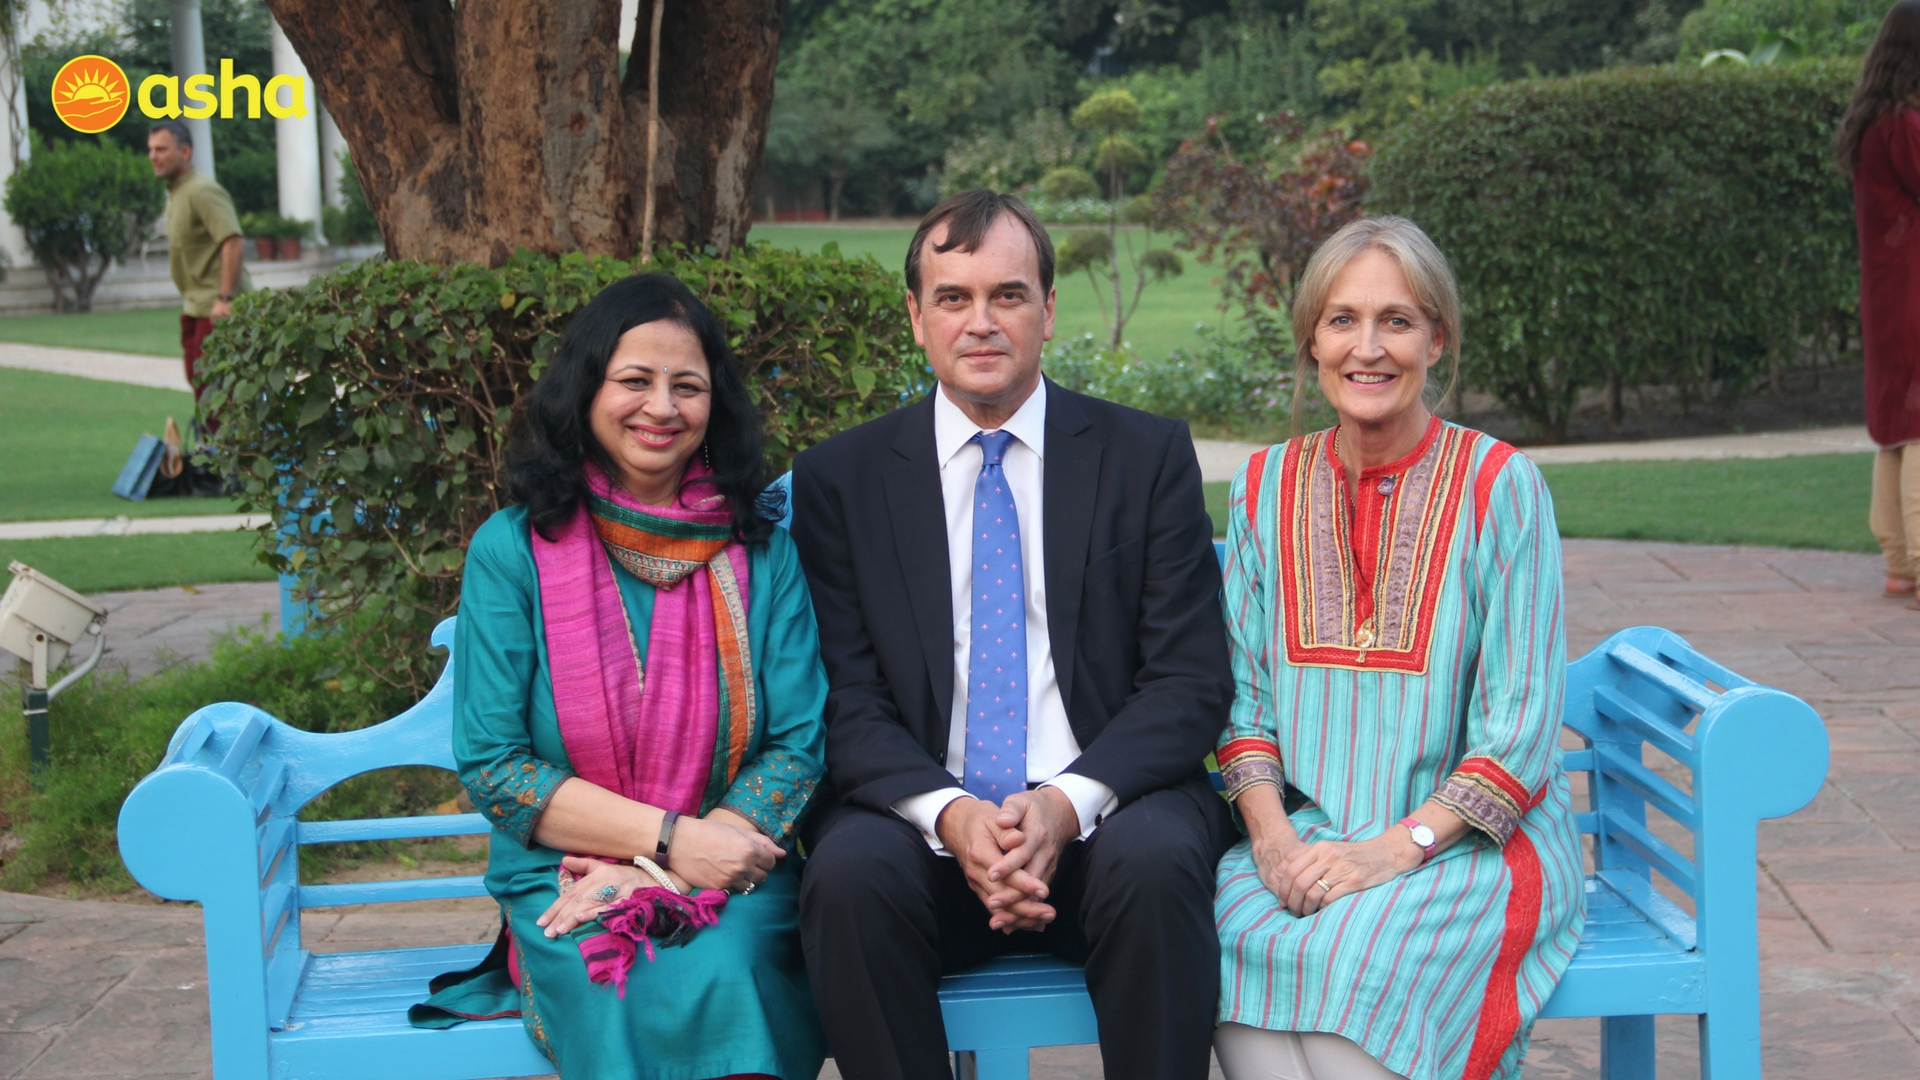 Dr. Kiran with the Honourable Sir Dominic Asquith KCMG and Lady Louise Asquith at the High Commissioner's residence.